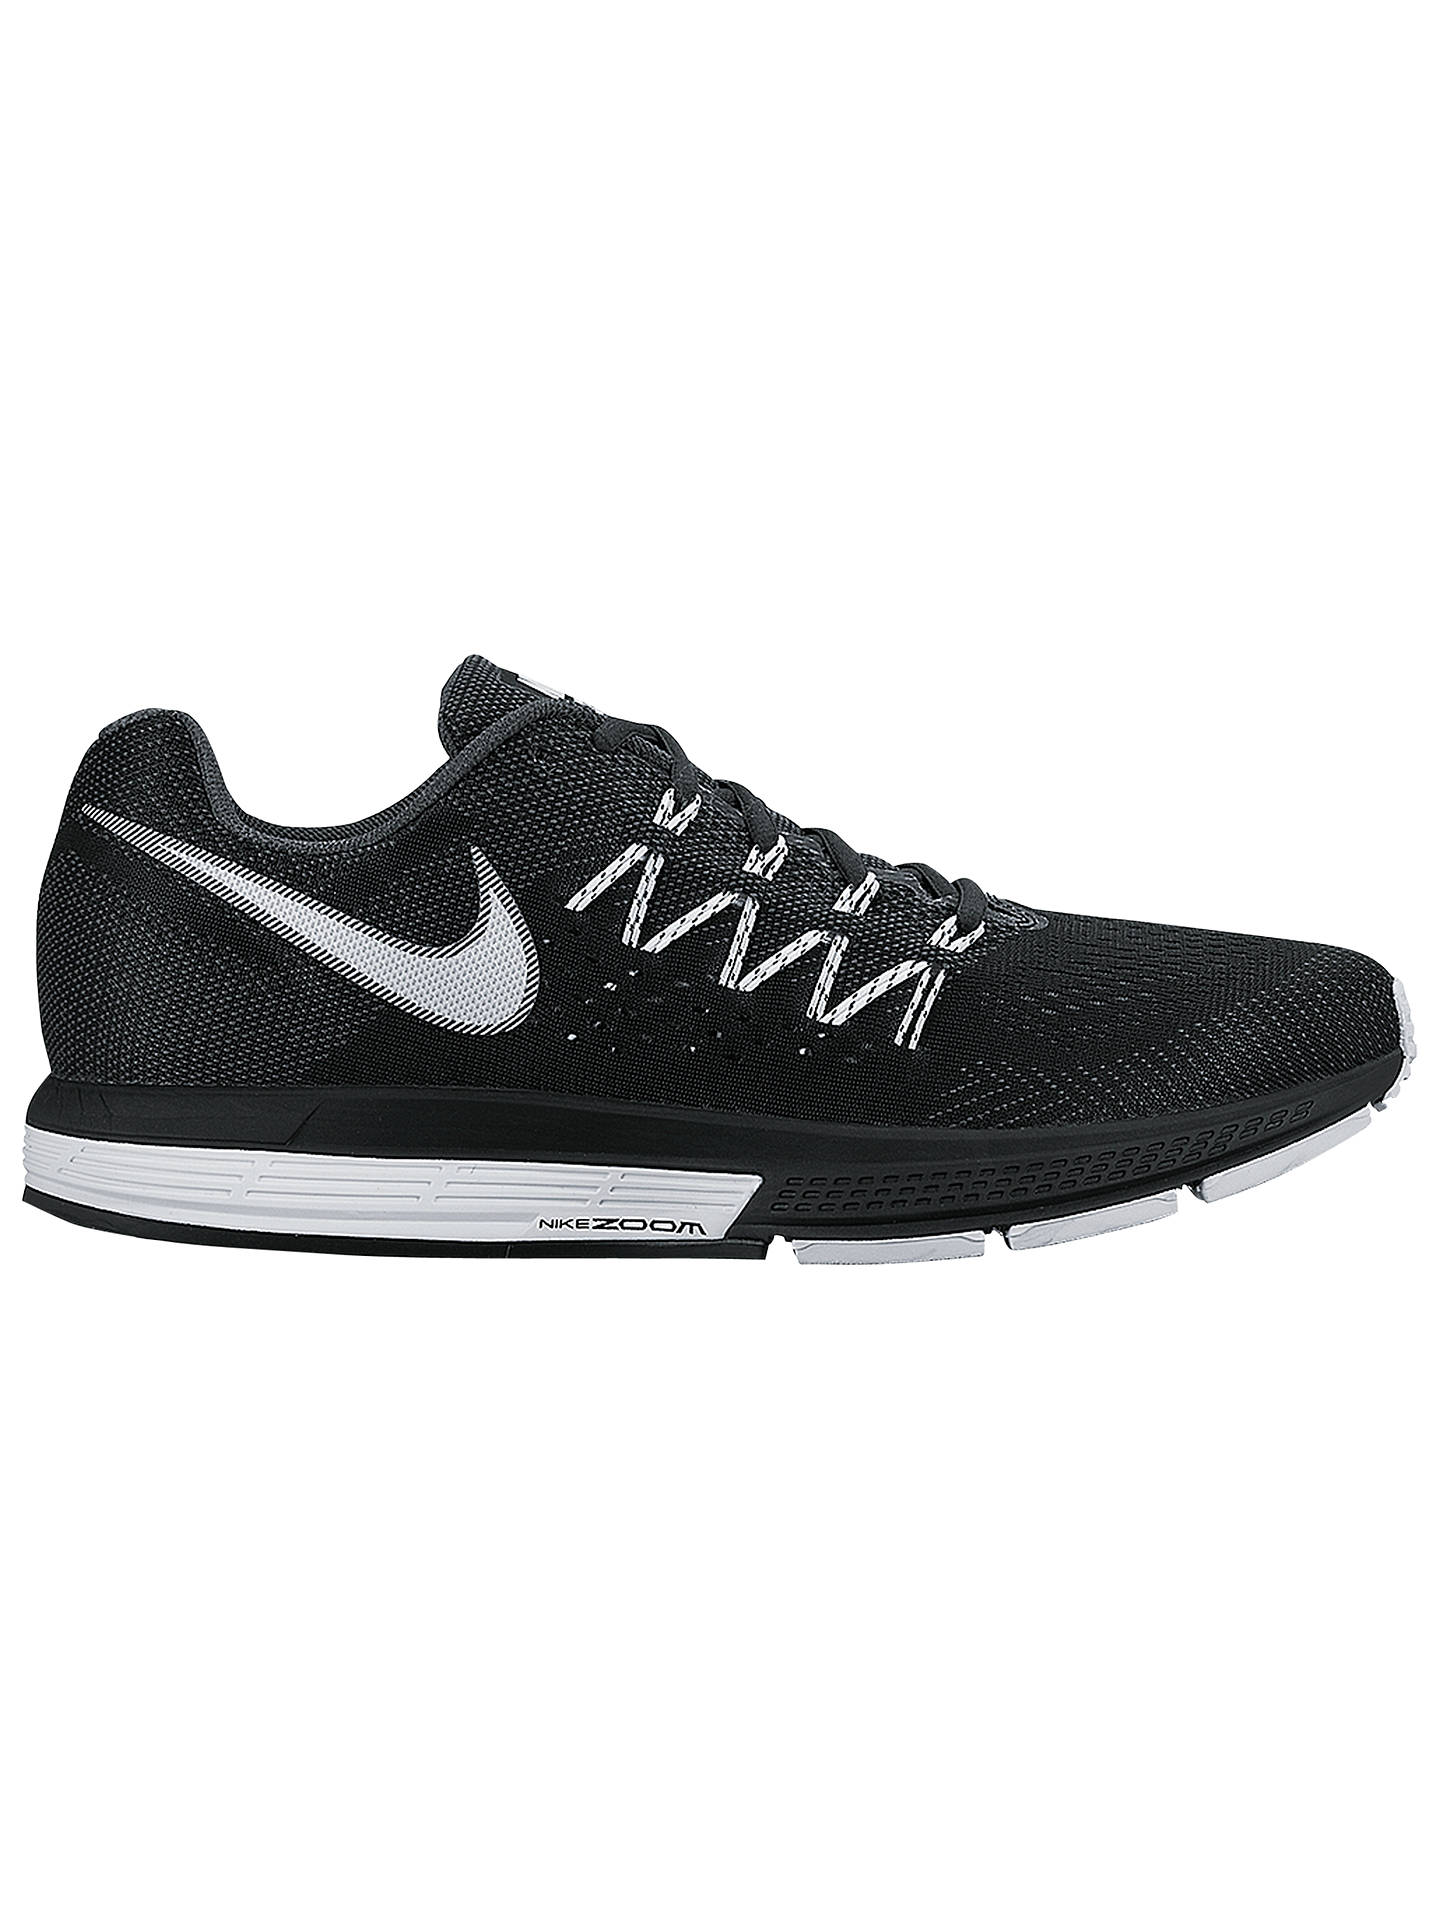 check out b249e c9234 Buy Nike Air Zoom Vomero 10 Men s Running Shoes, Black White, 7 Online ...